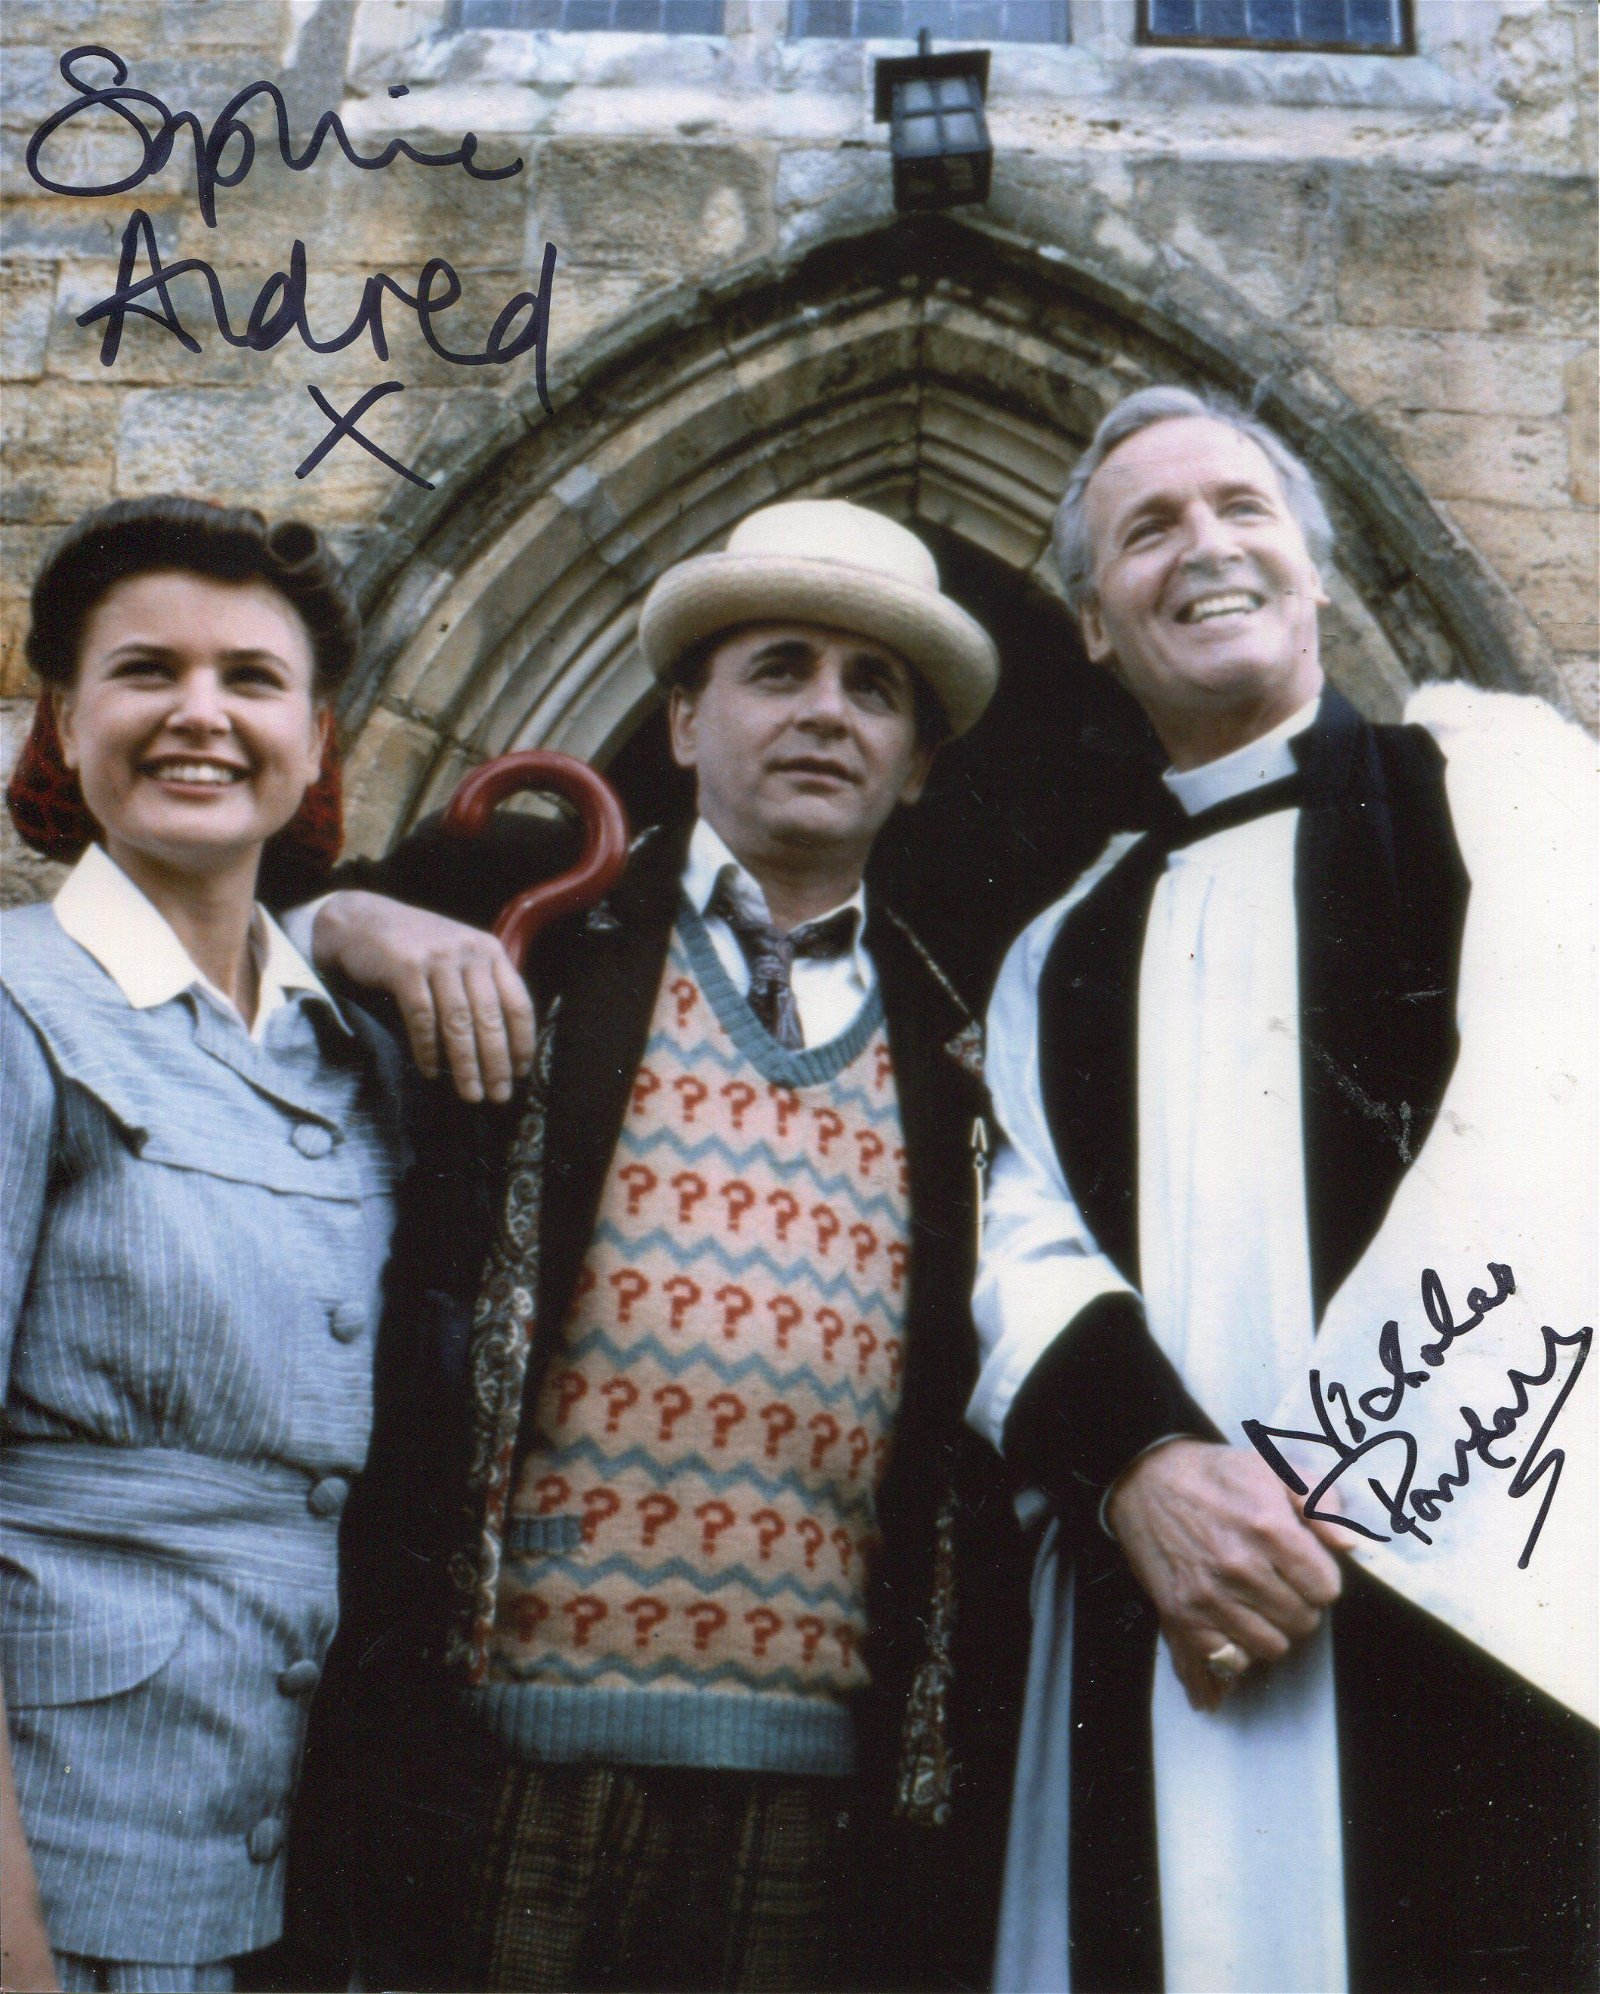 Doctor Who Curse of Fenric 8x10 inch photo scene signed